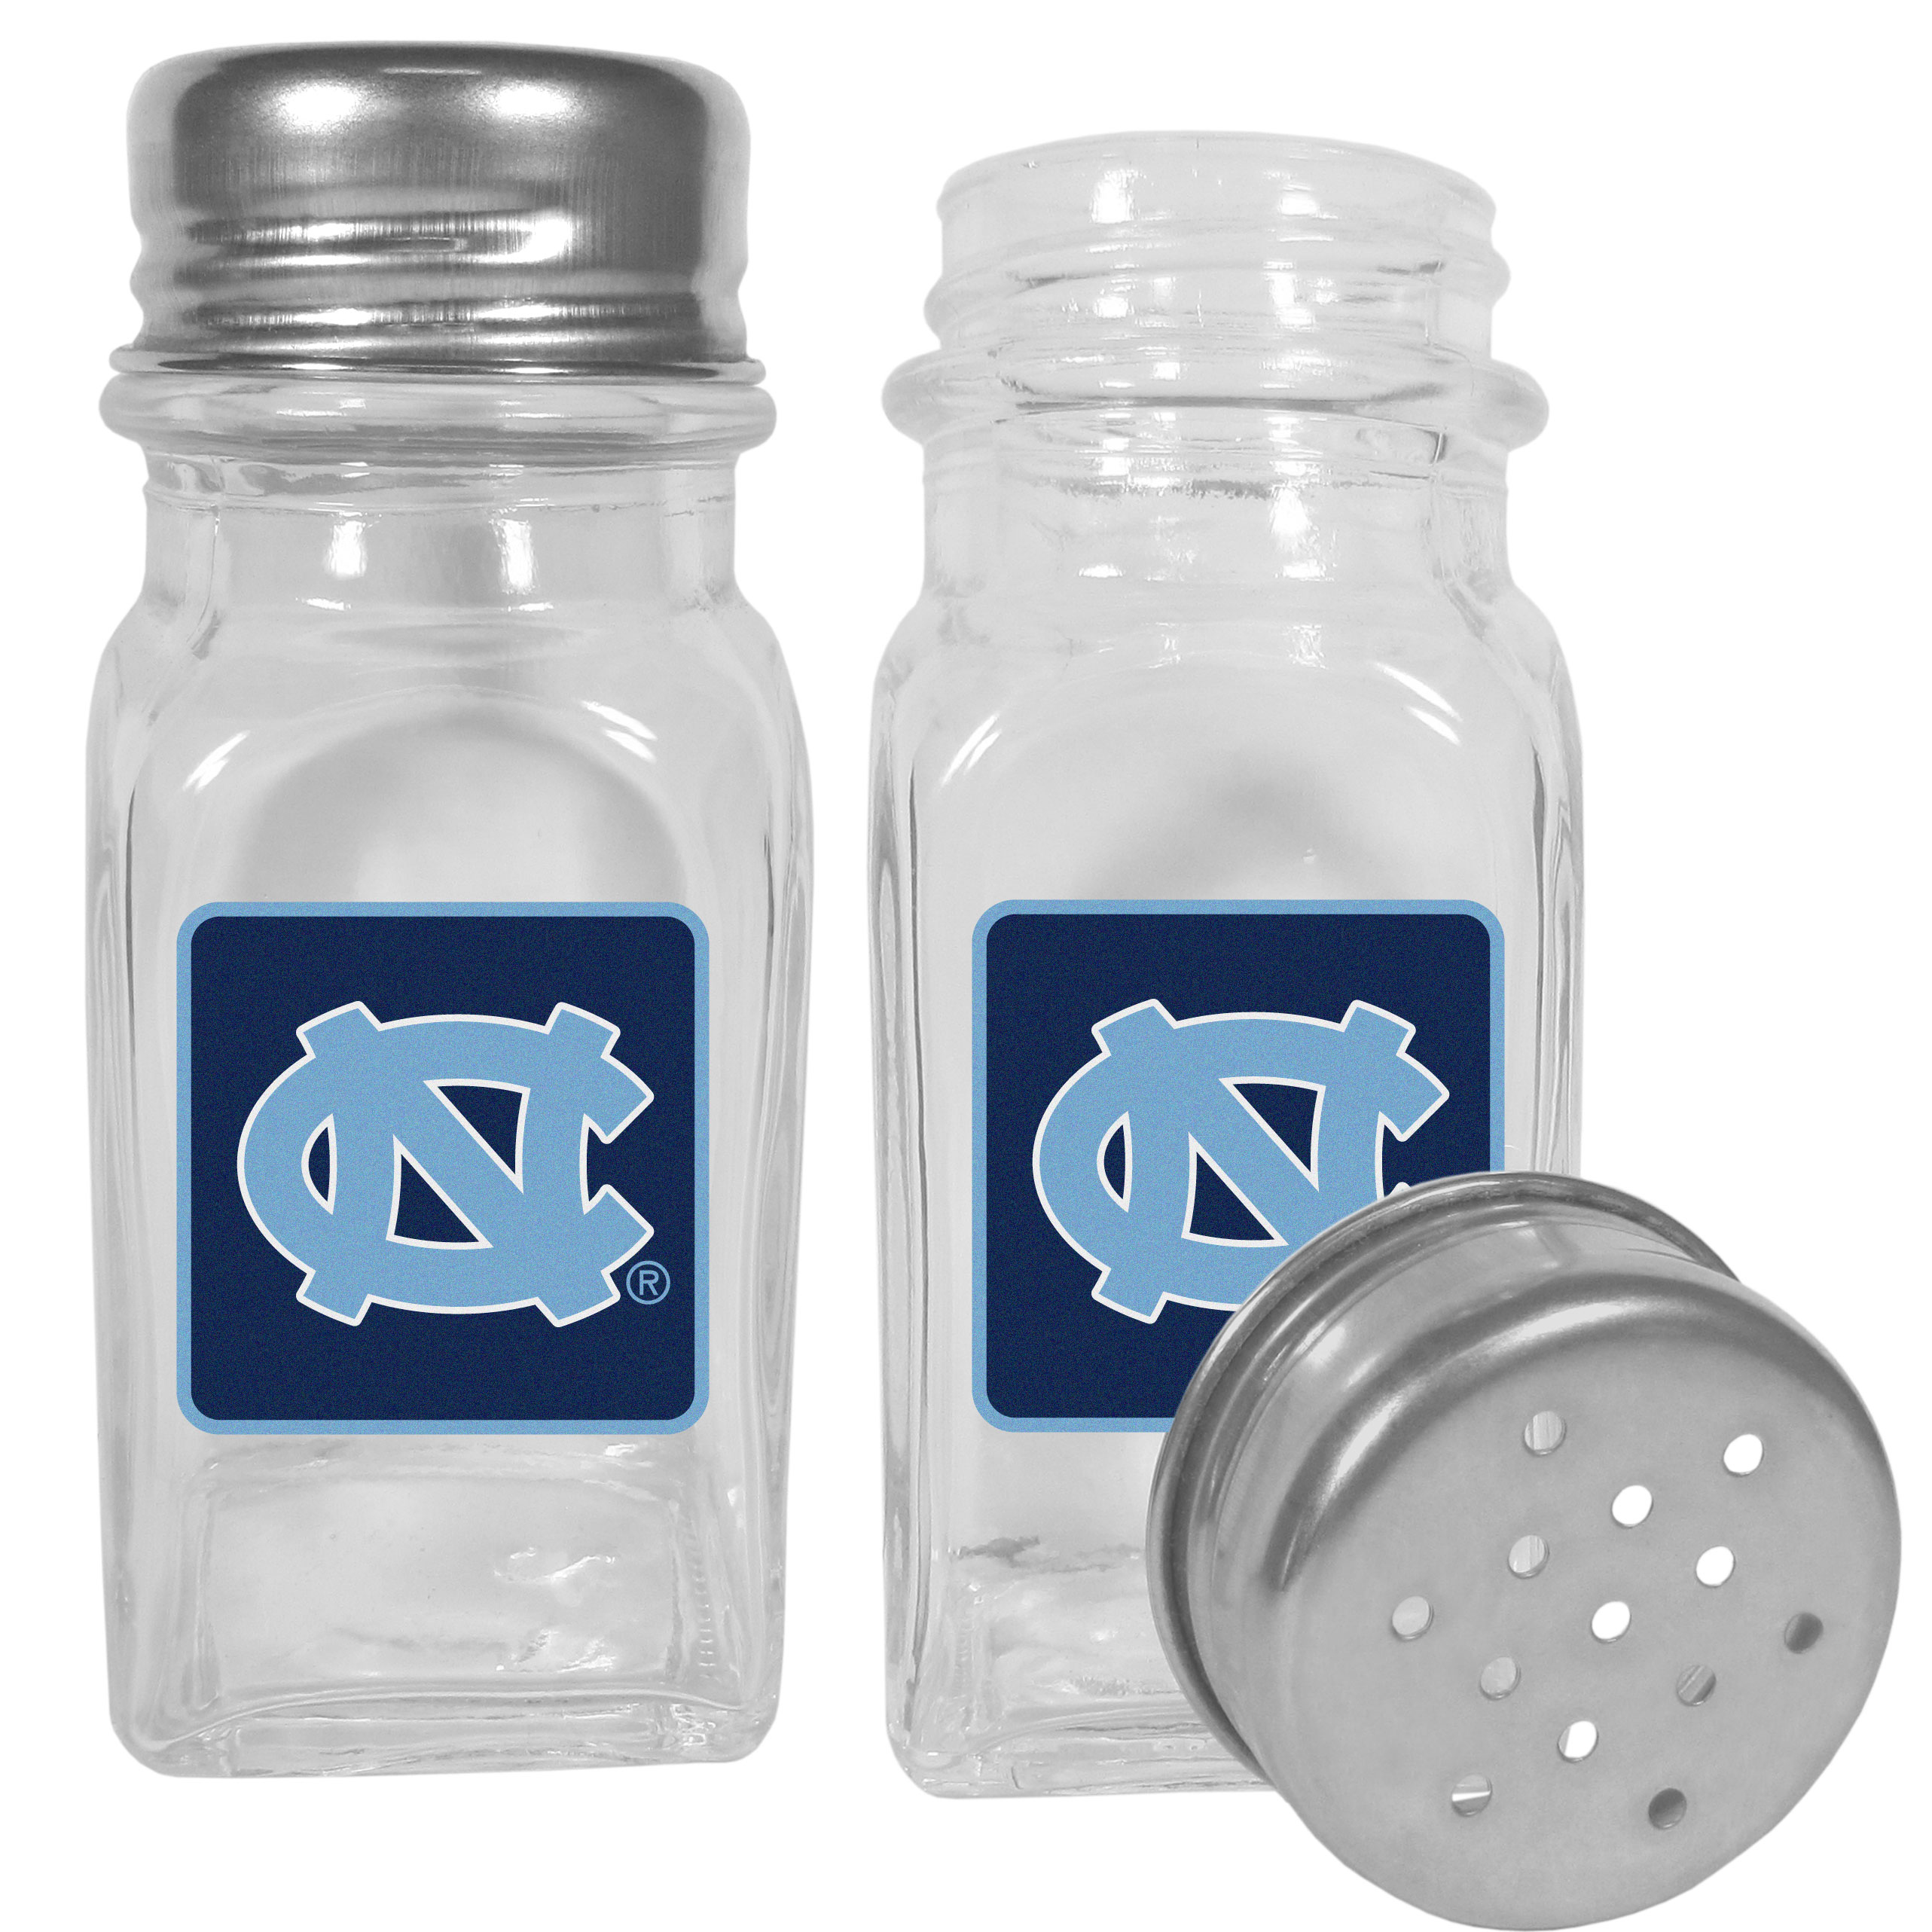 N. Carolina Tar Heels Graphics Salt and Pepper Shaker - No tailgate party is complete without your N. Carolina Tar Heels salt & pepper shakers featuring bright team logos. The diner replica salt and pepper shakers are glass with screw top lids. These team shakers are a great grill accessory whether you are barbecuing on the patio, picnicing or having a game day party.